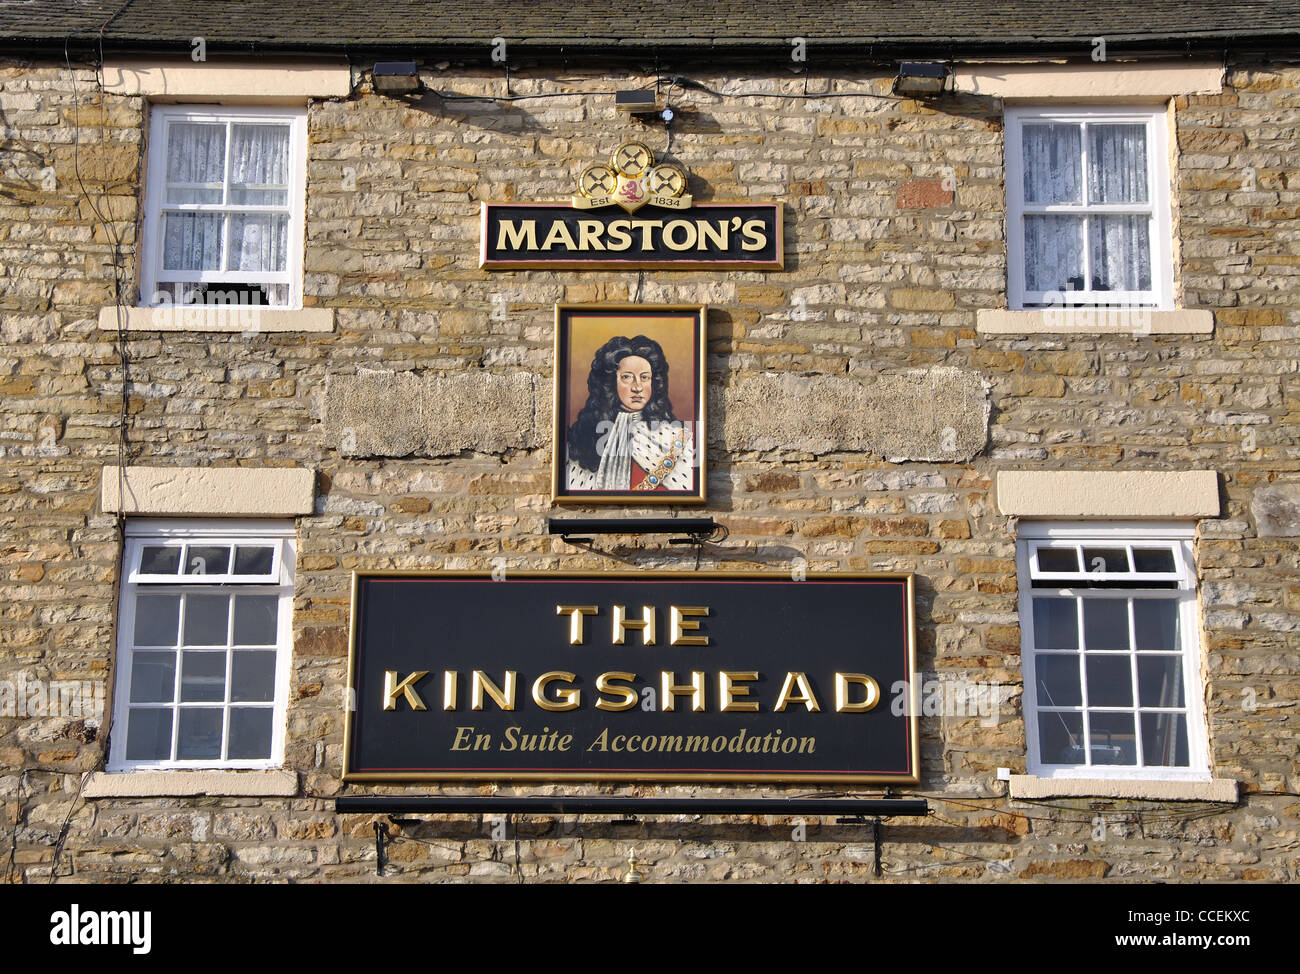 The Kings Head public house, Allendale,Northumberland, England, UK - Stock Image